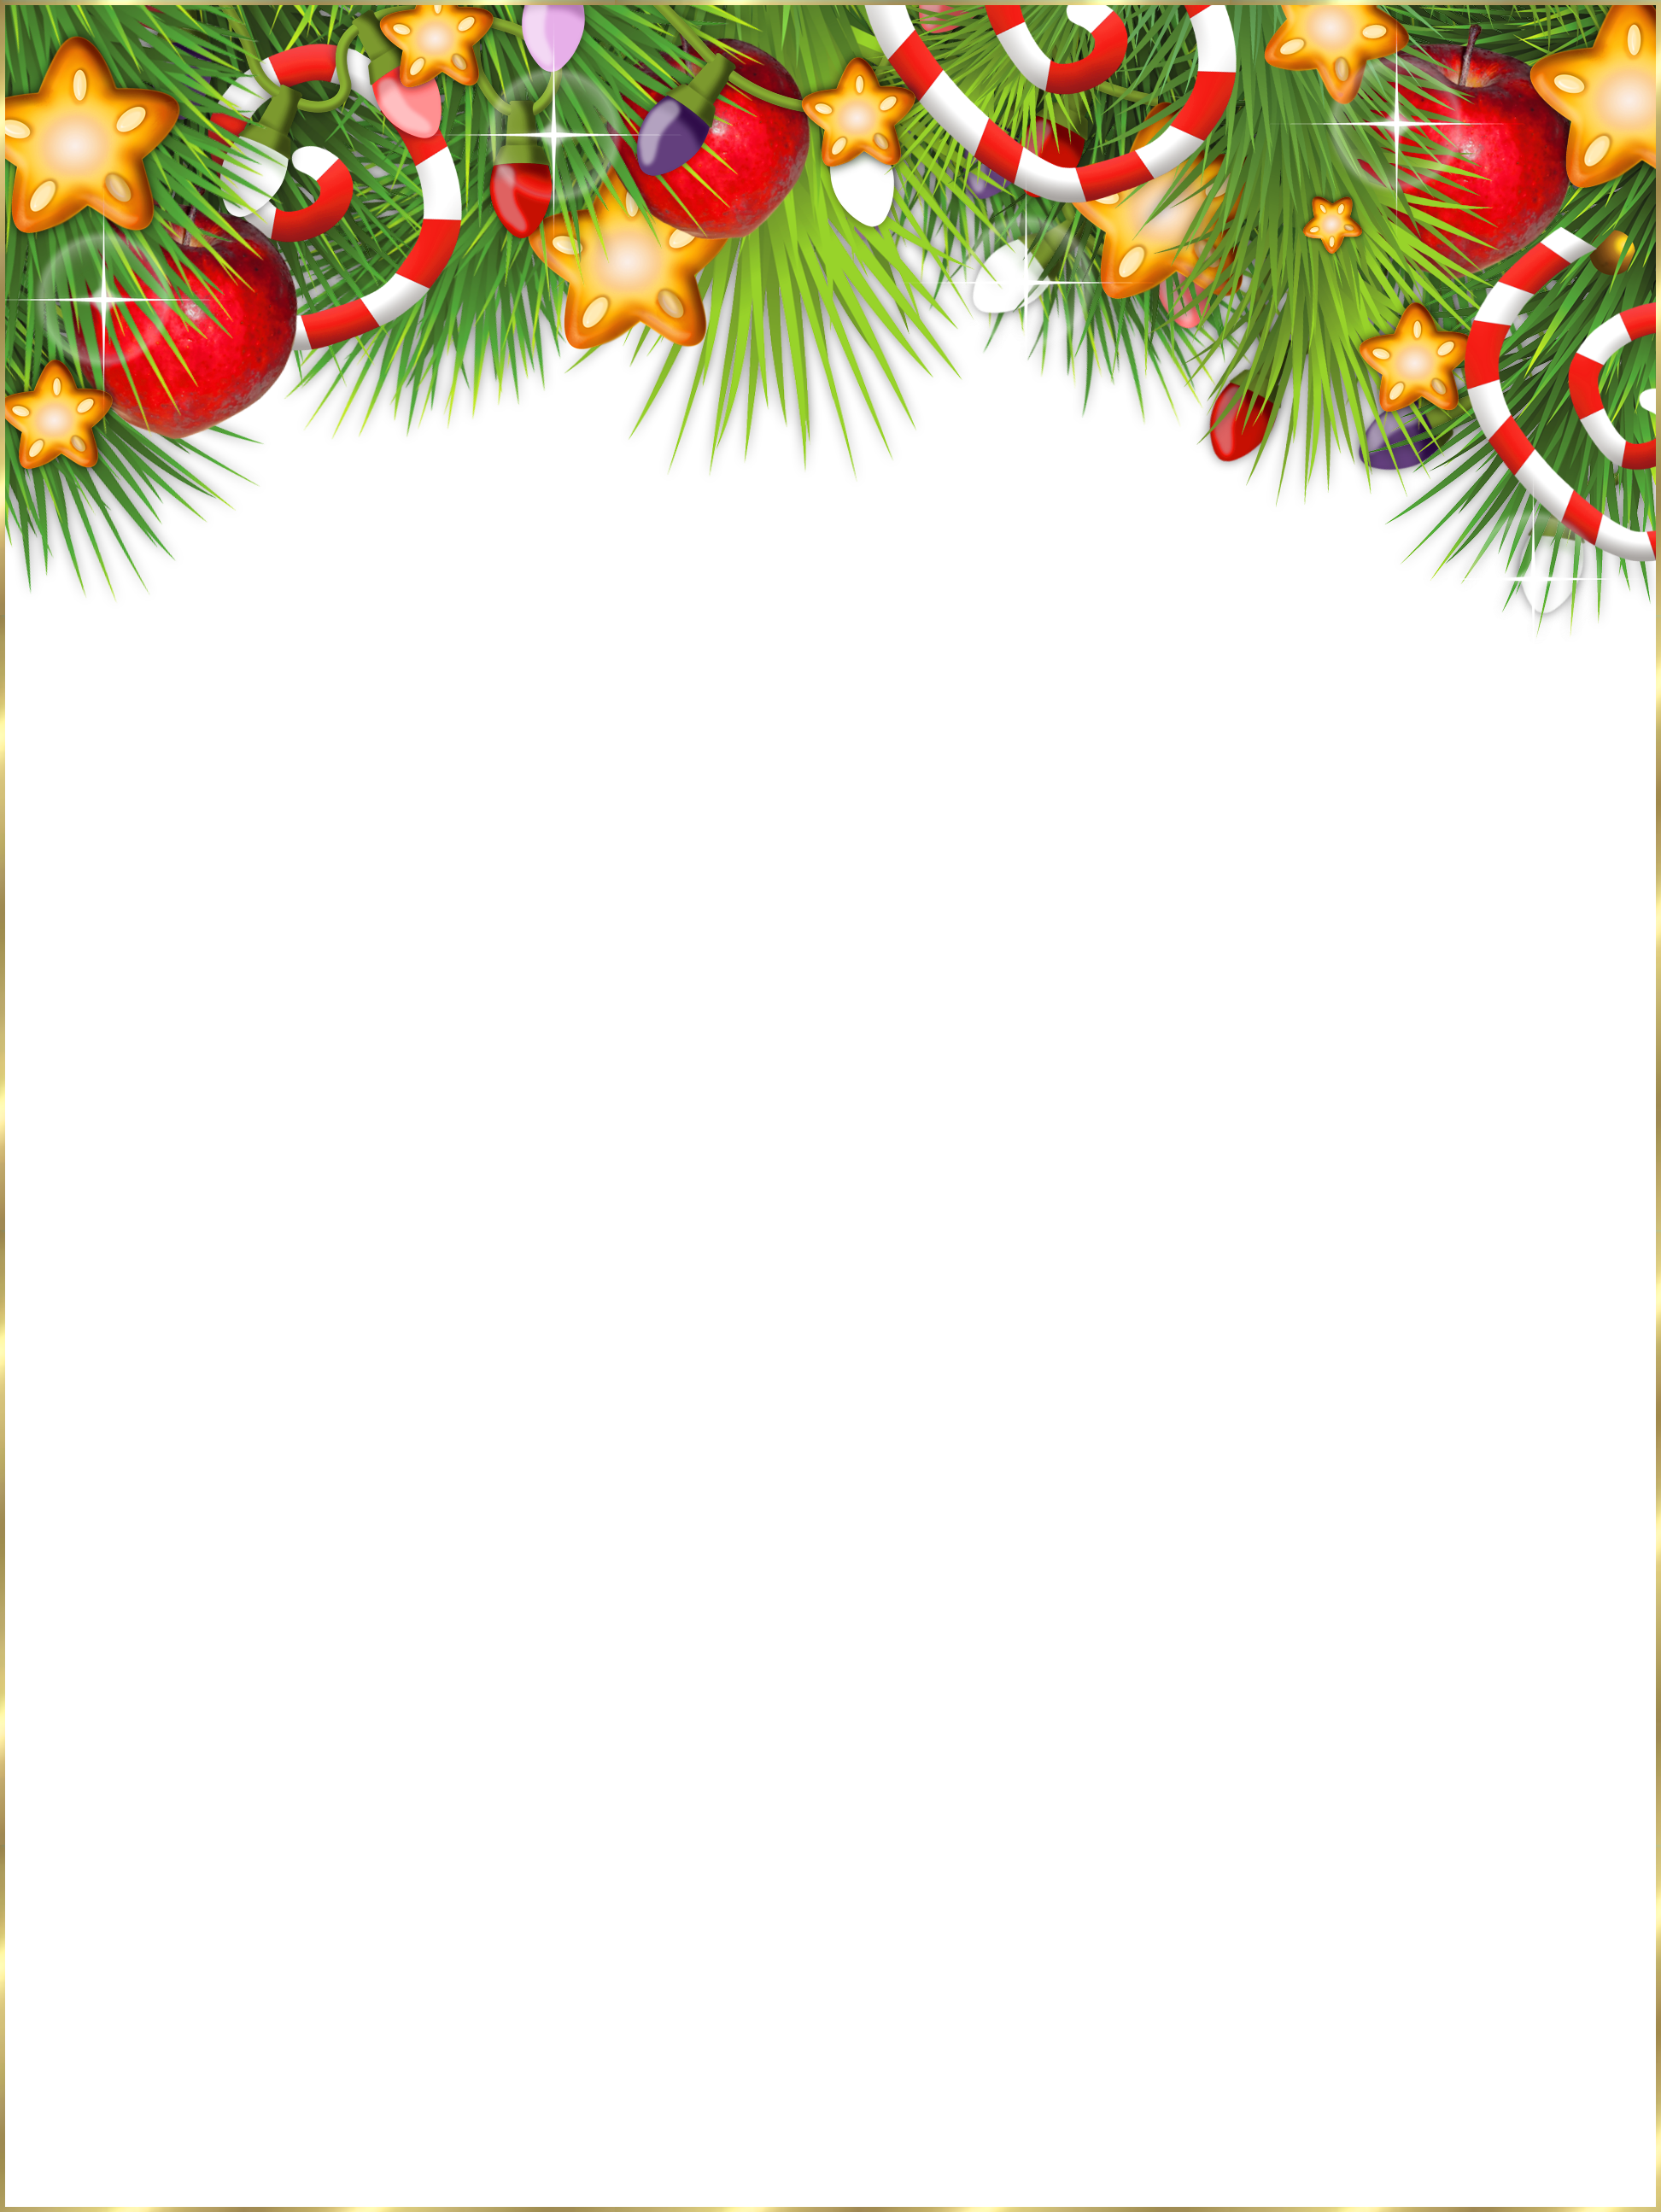 Noche buena flower clipart image download Cute Transparent Christmas Photo Frame | Gallery Yopriceville ... image download